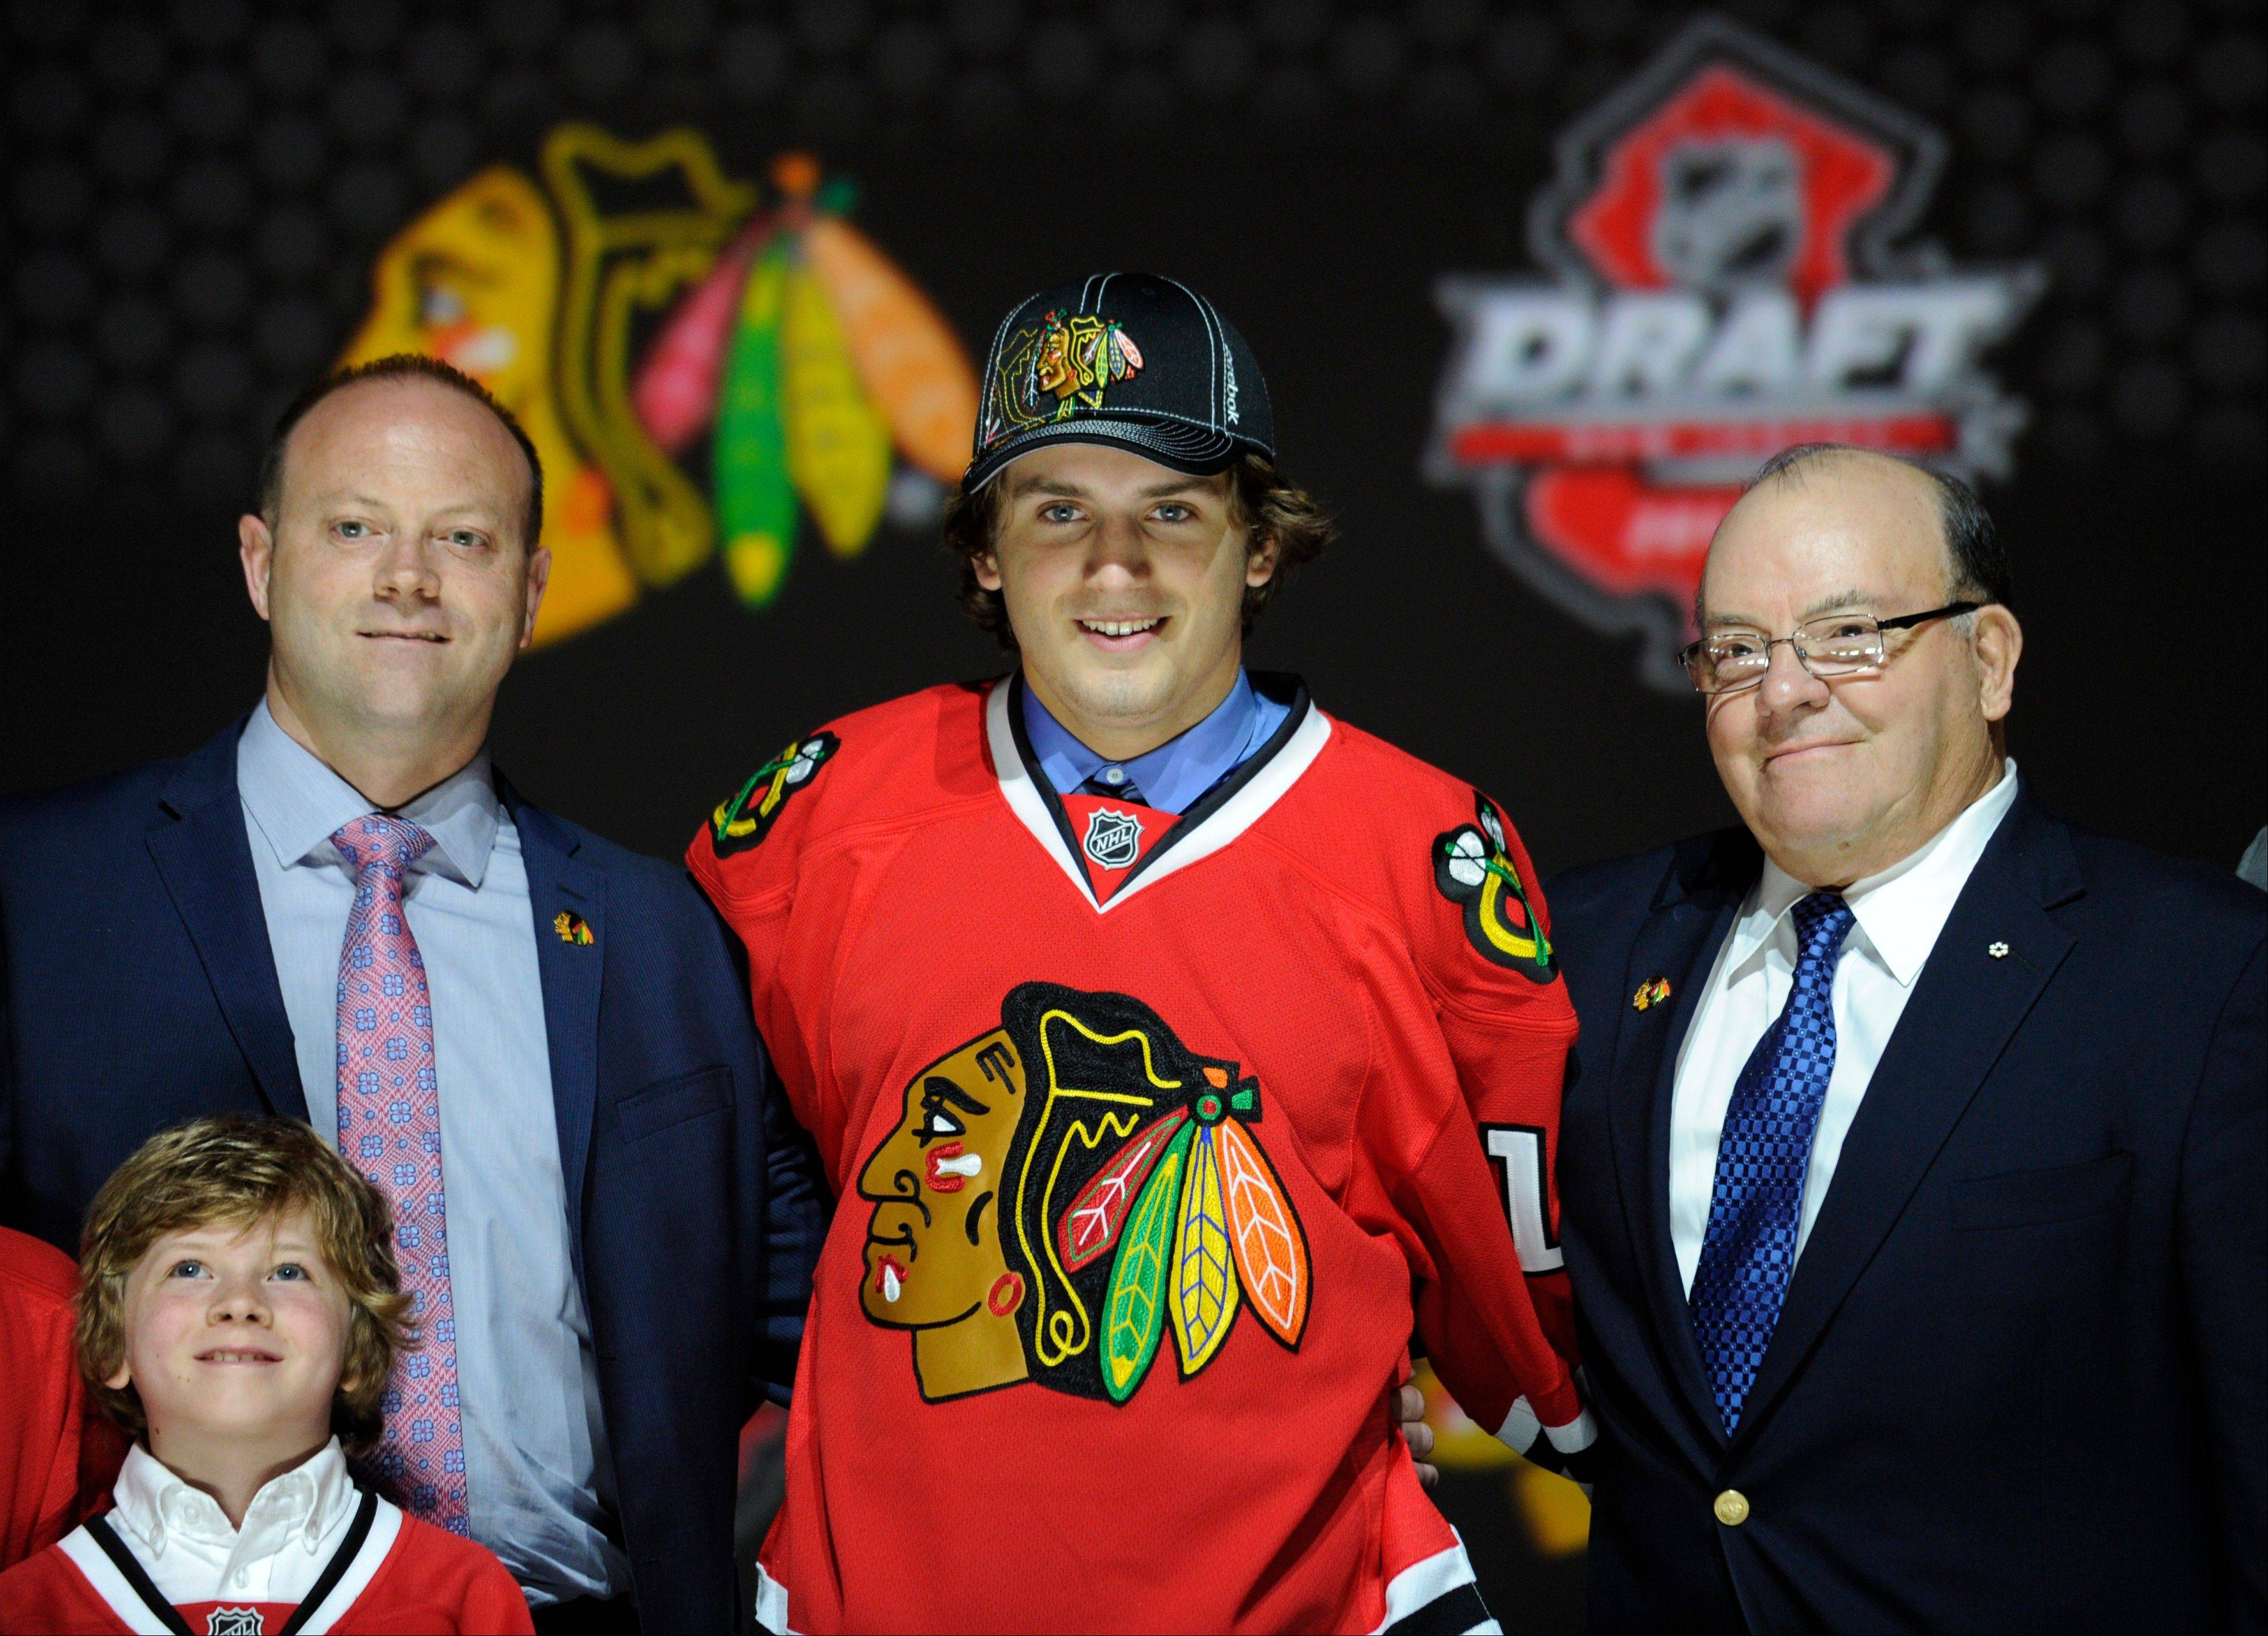 Ryan Hartman is proud to be wearing a Blackhawks jersey, as he was on June 30 standing between Stan Bowman, left, and Scotty Bowman after being drafted 30th overall in the first round.